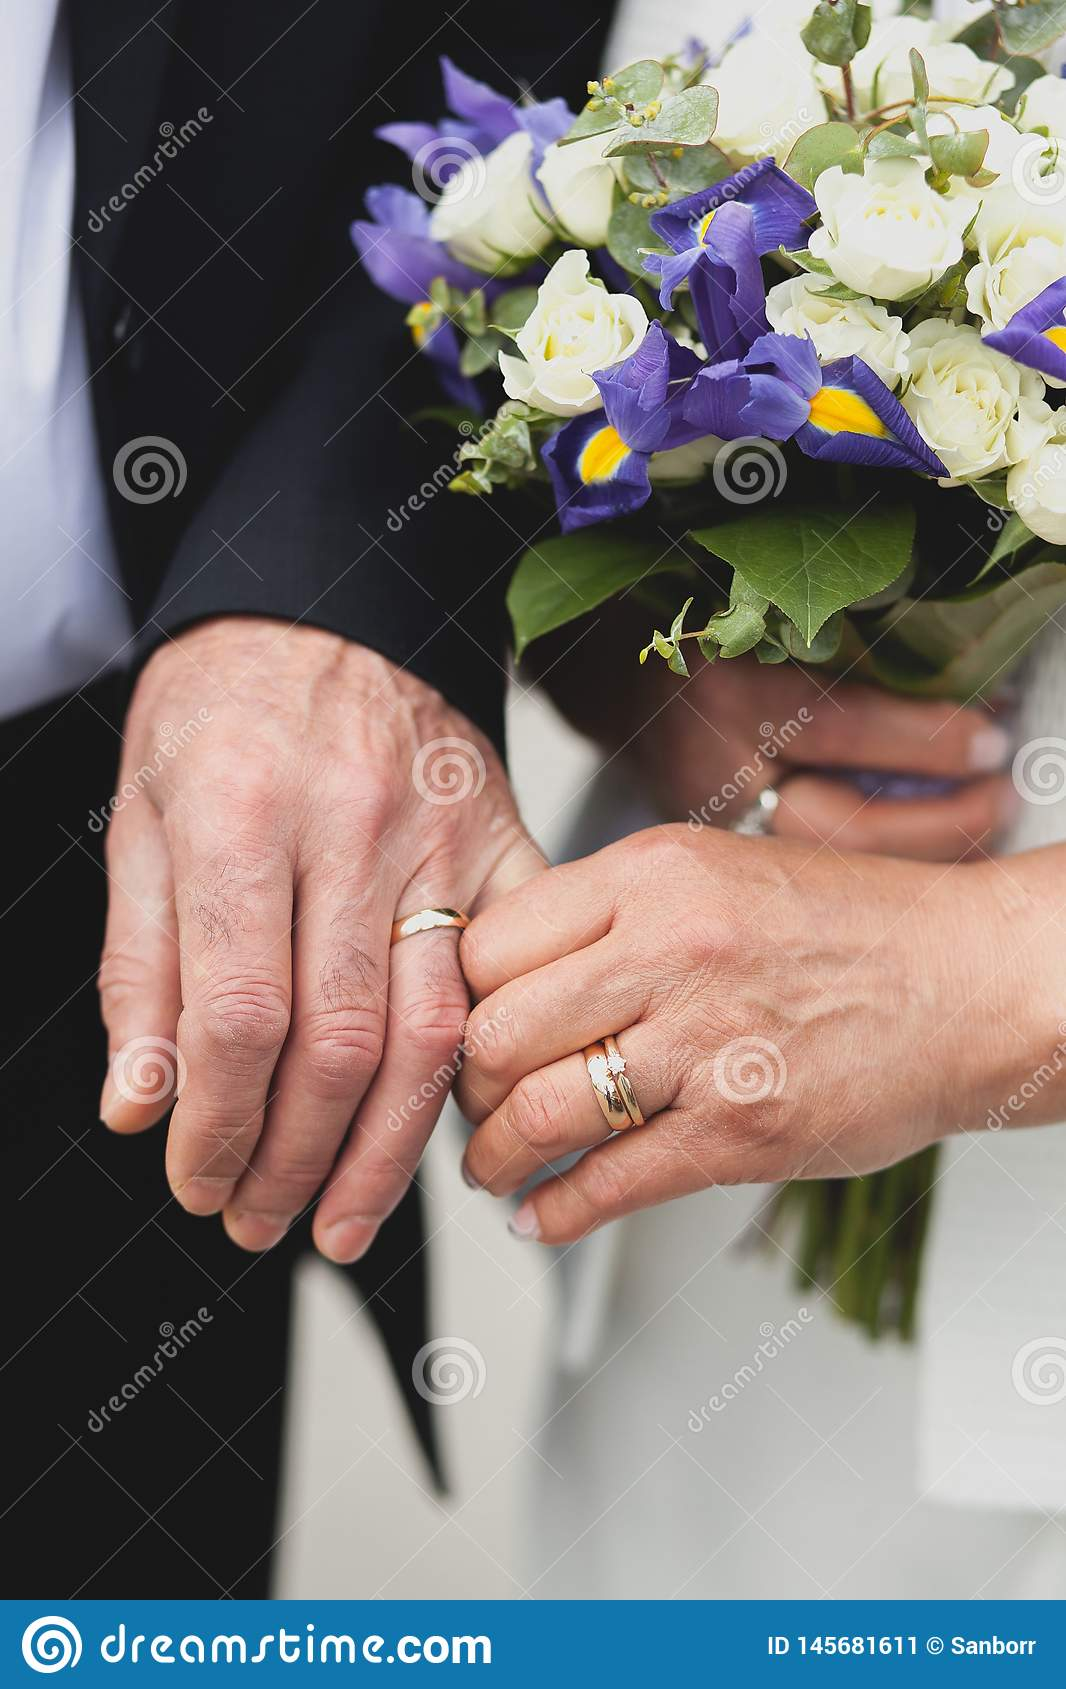 An elderly couple after the wedding in the Church, their hands close-up. Wedding of the elderly, the bride holds a beautiful